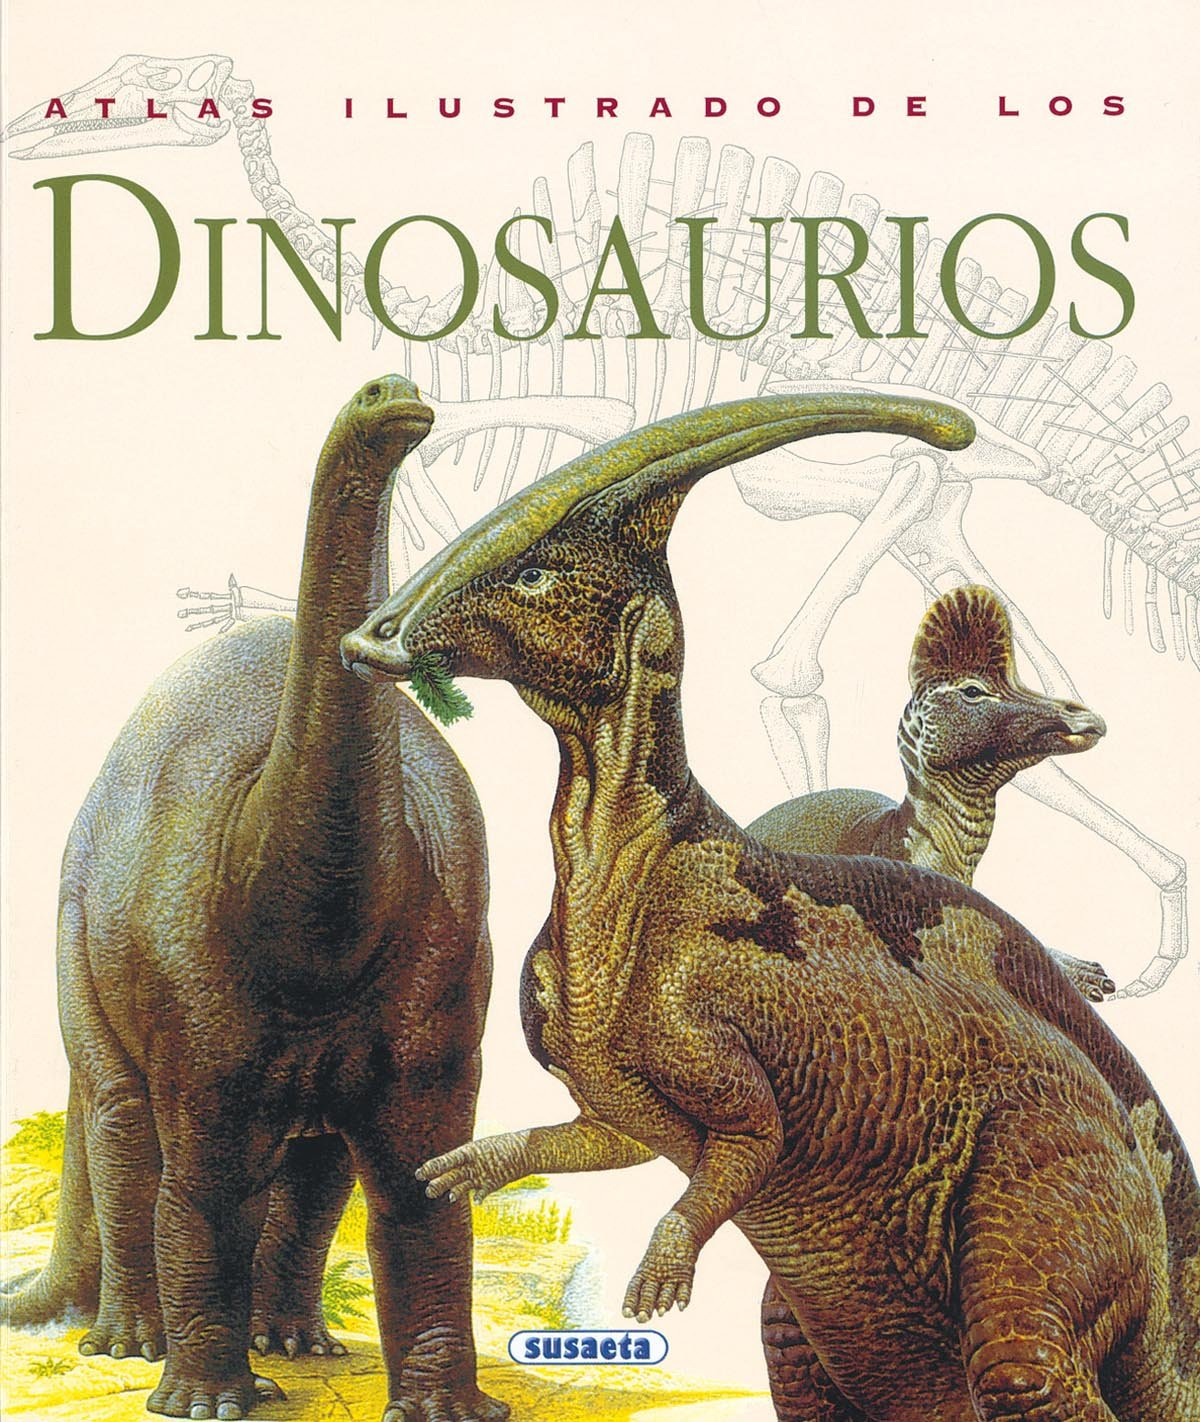 Atlas Ilustrado De Los Dinosaurios: Amazon.es: David Norman ...